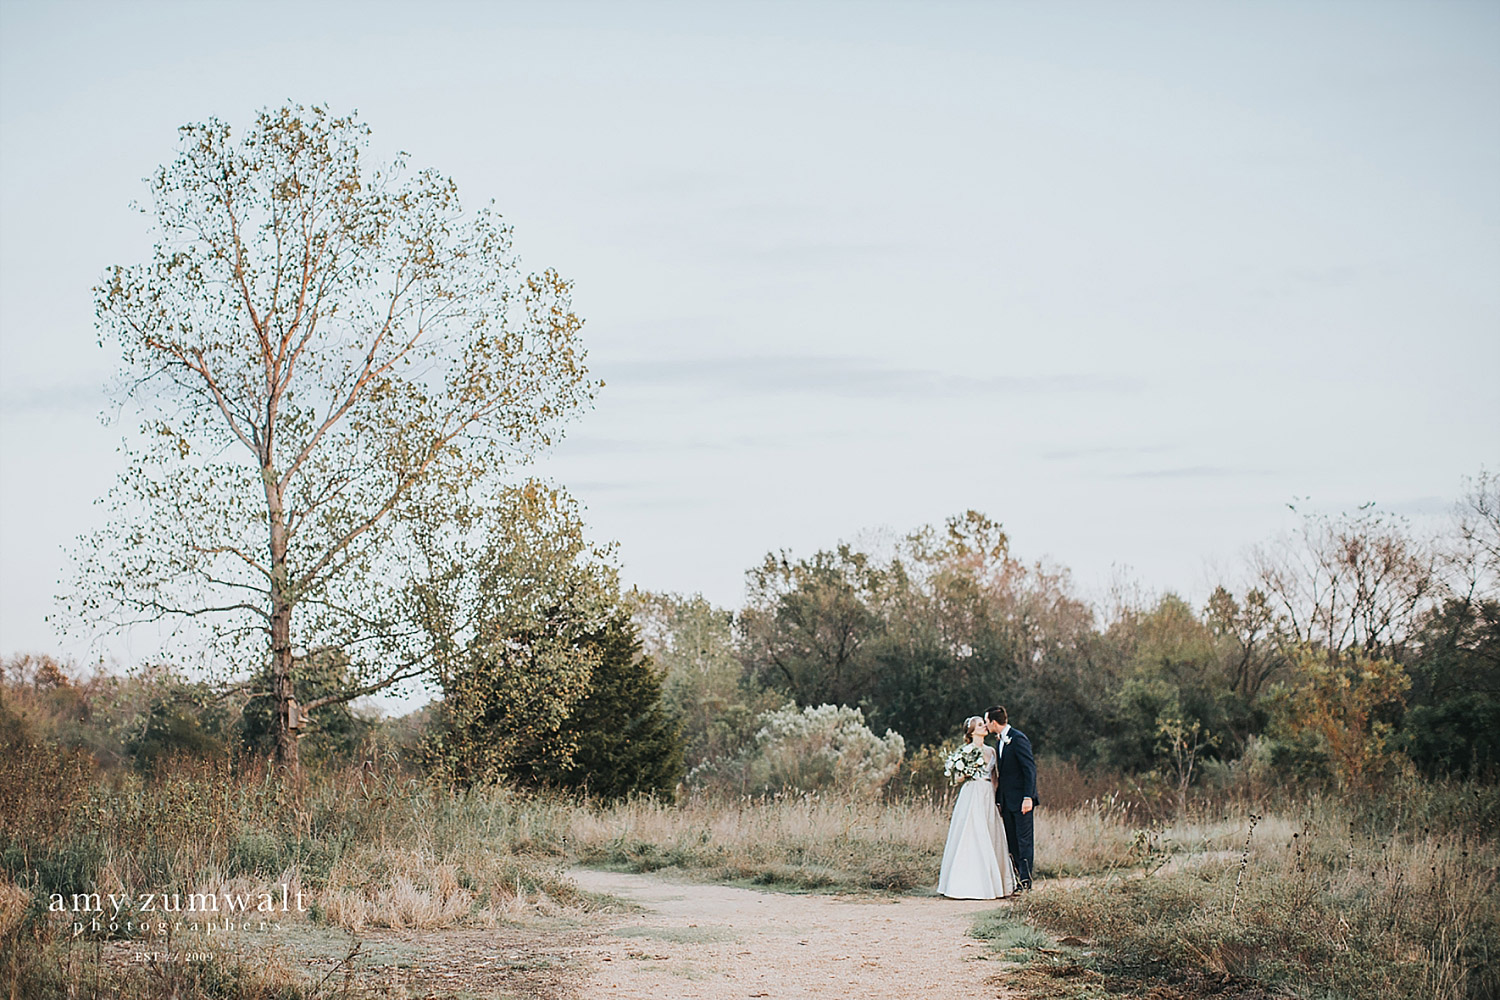 Trinity_River_Audubon_Center_Wedding_50.jpg